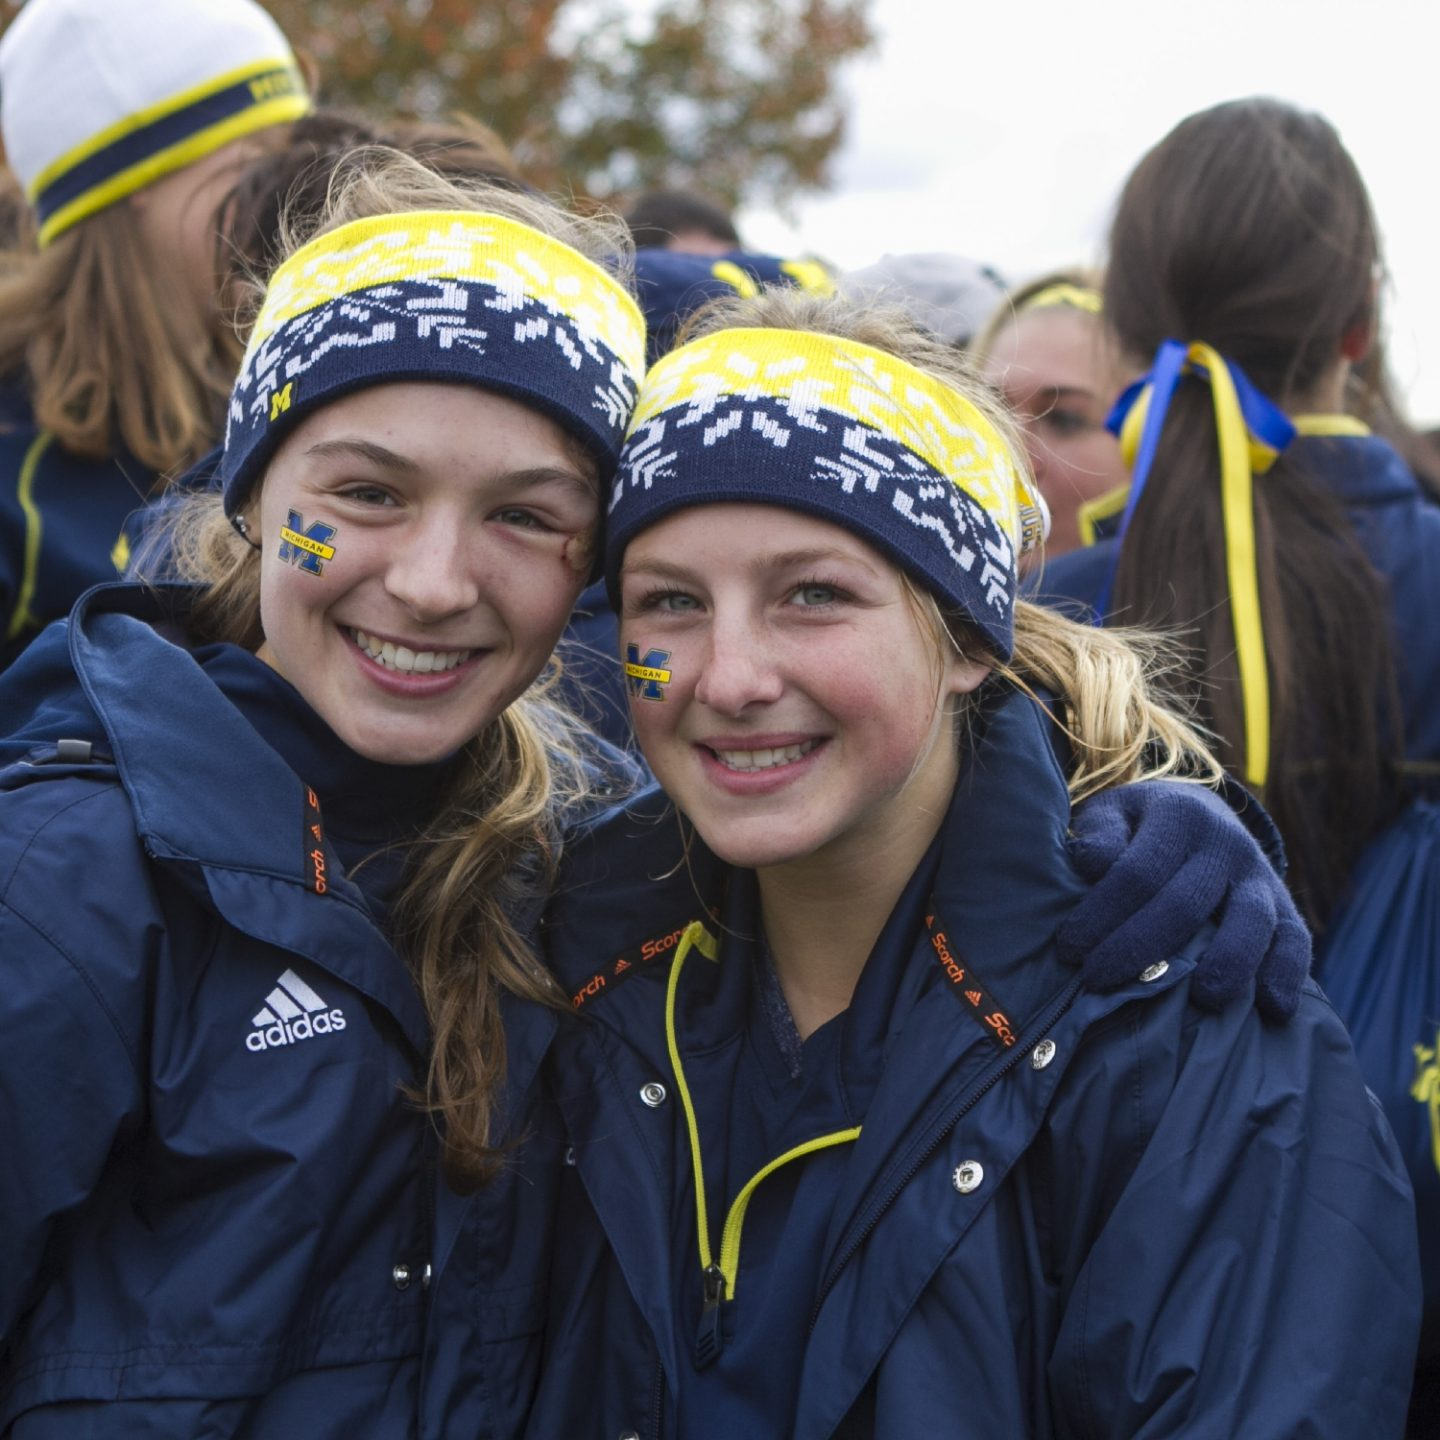 Project to promote mental health featuring former U-M athletes resonates with many students